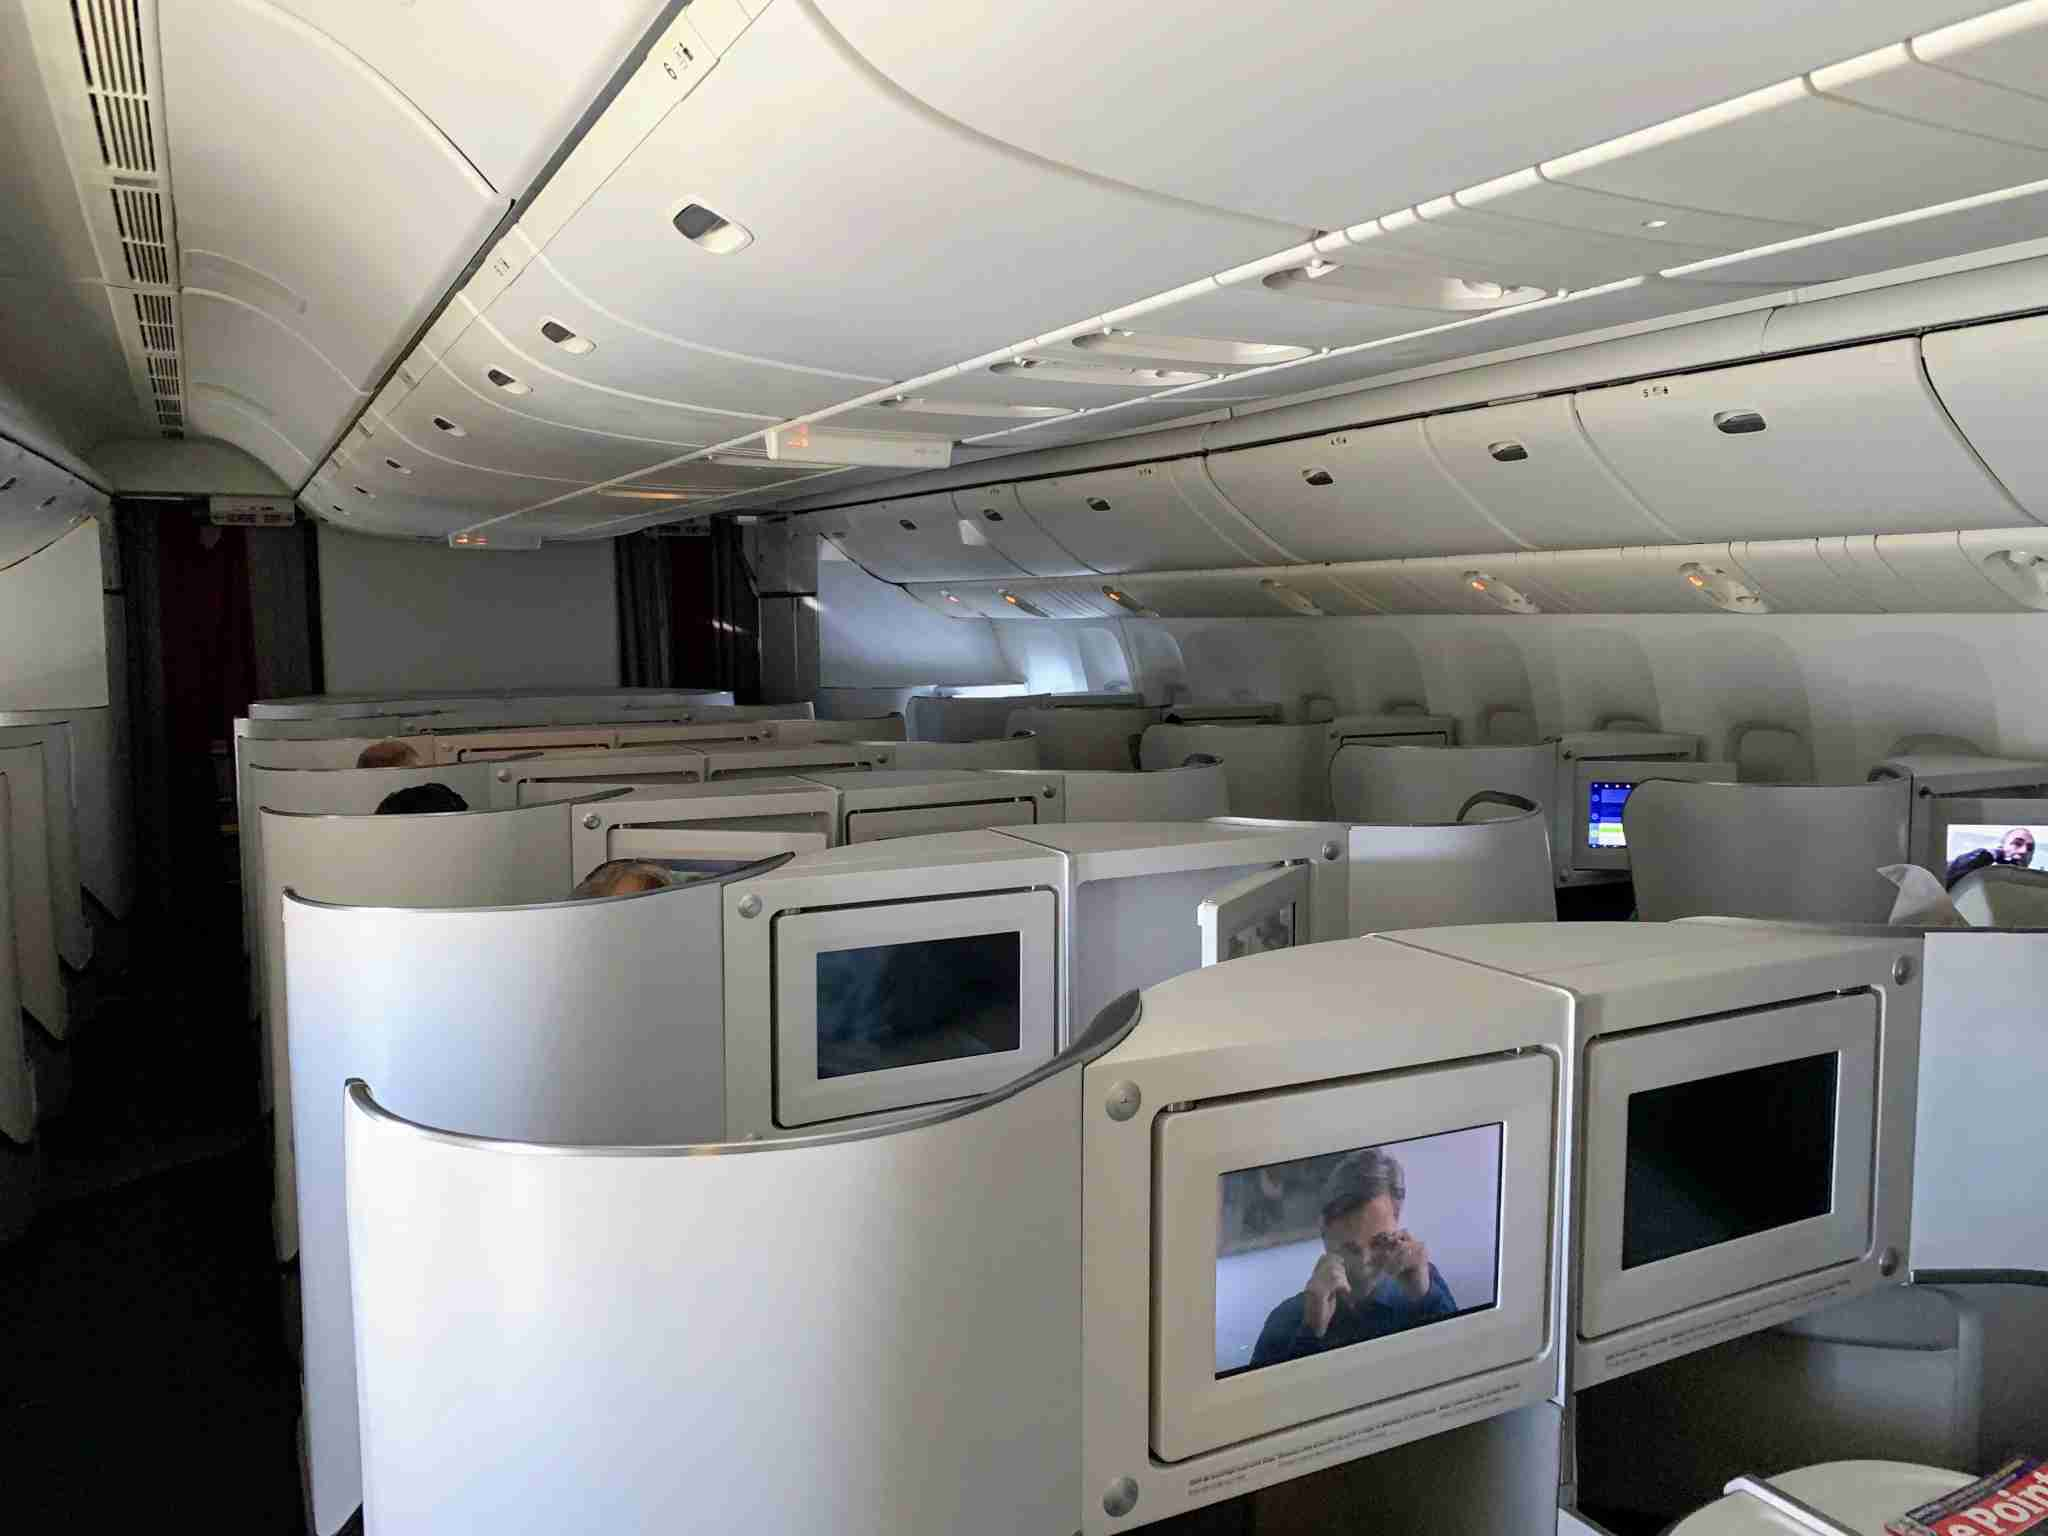 Air France Boeing 777 Forward Business Class rear facing